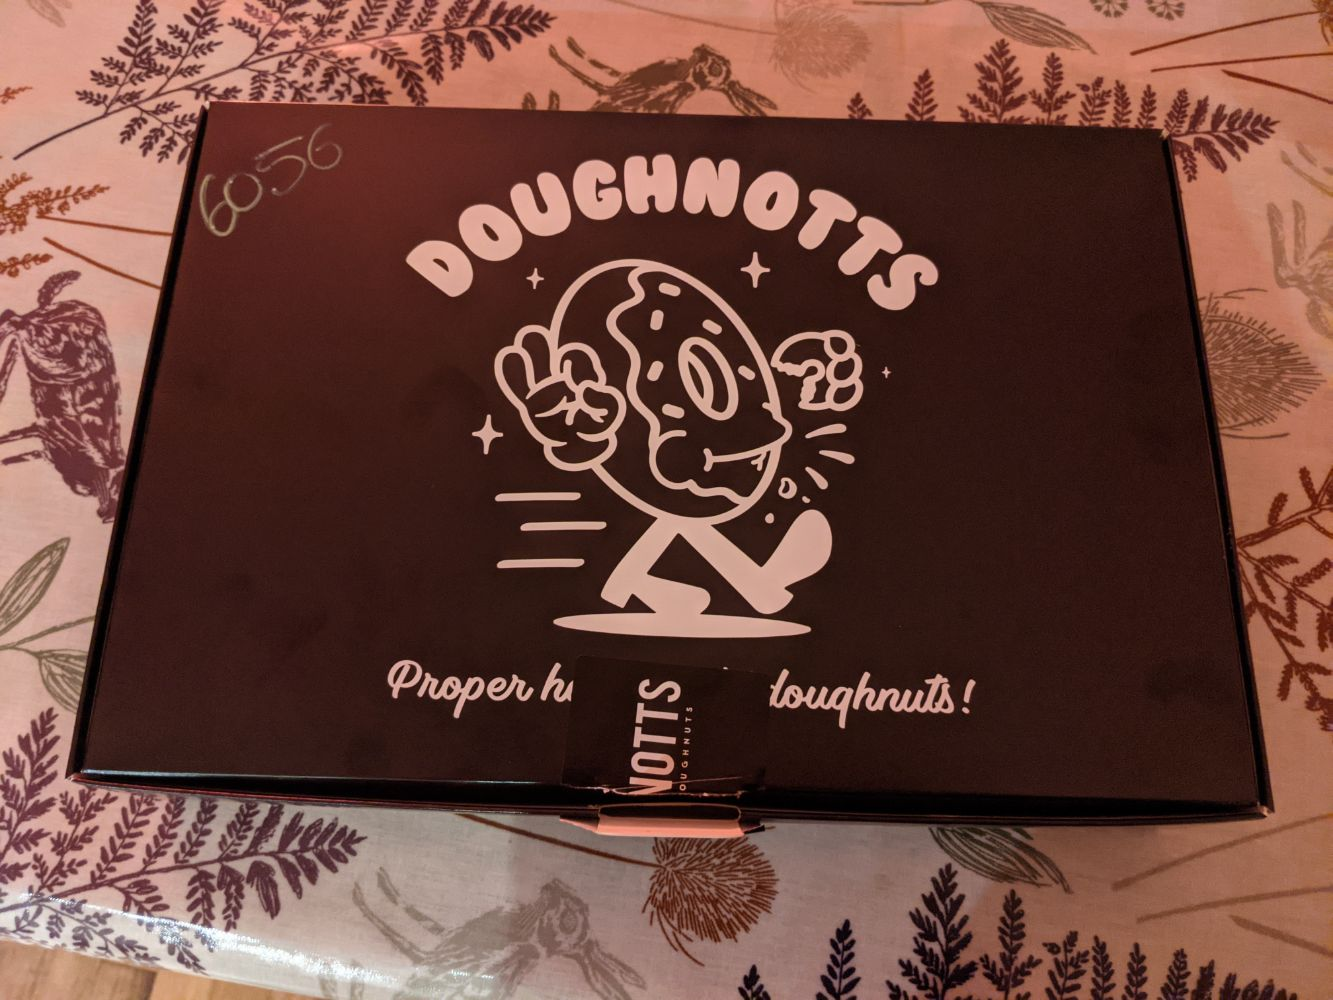 The Doughnotts packaging, with an anthropomorphised doughnut walking and smiling